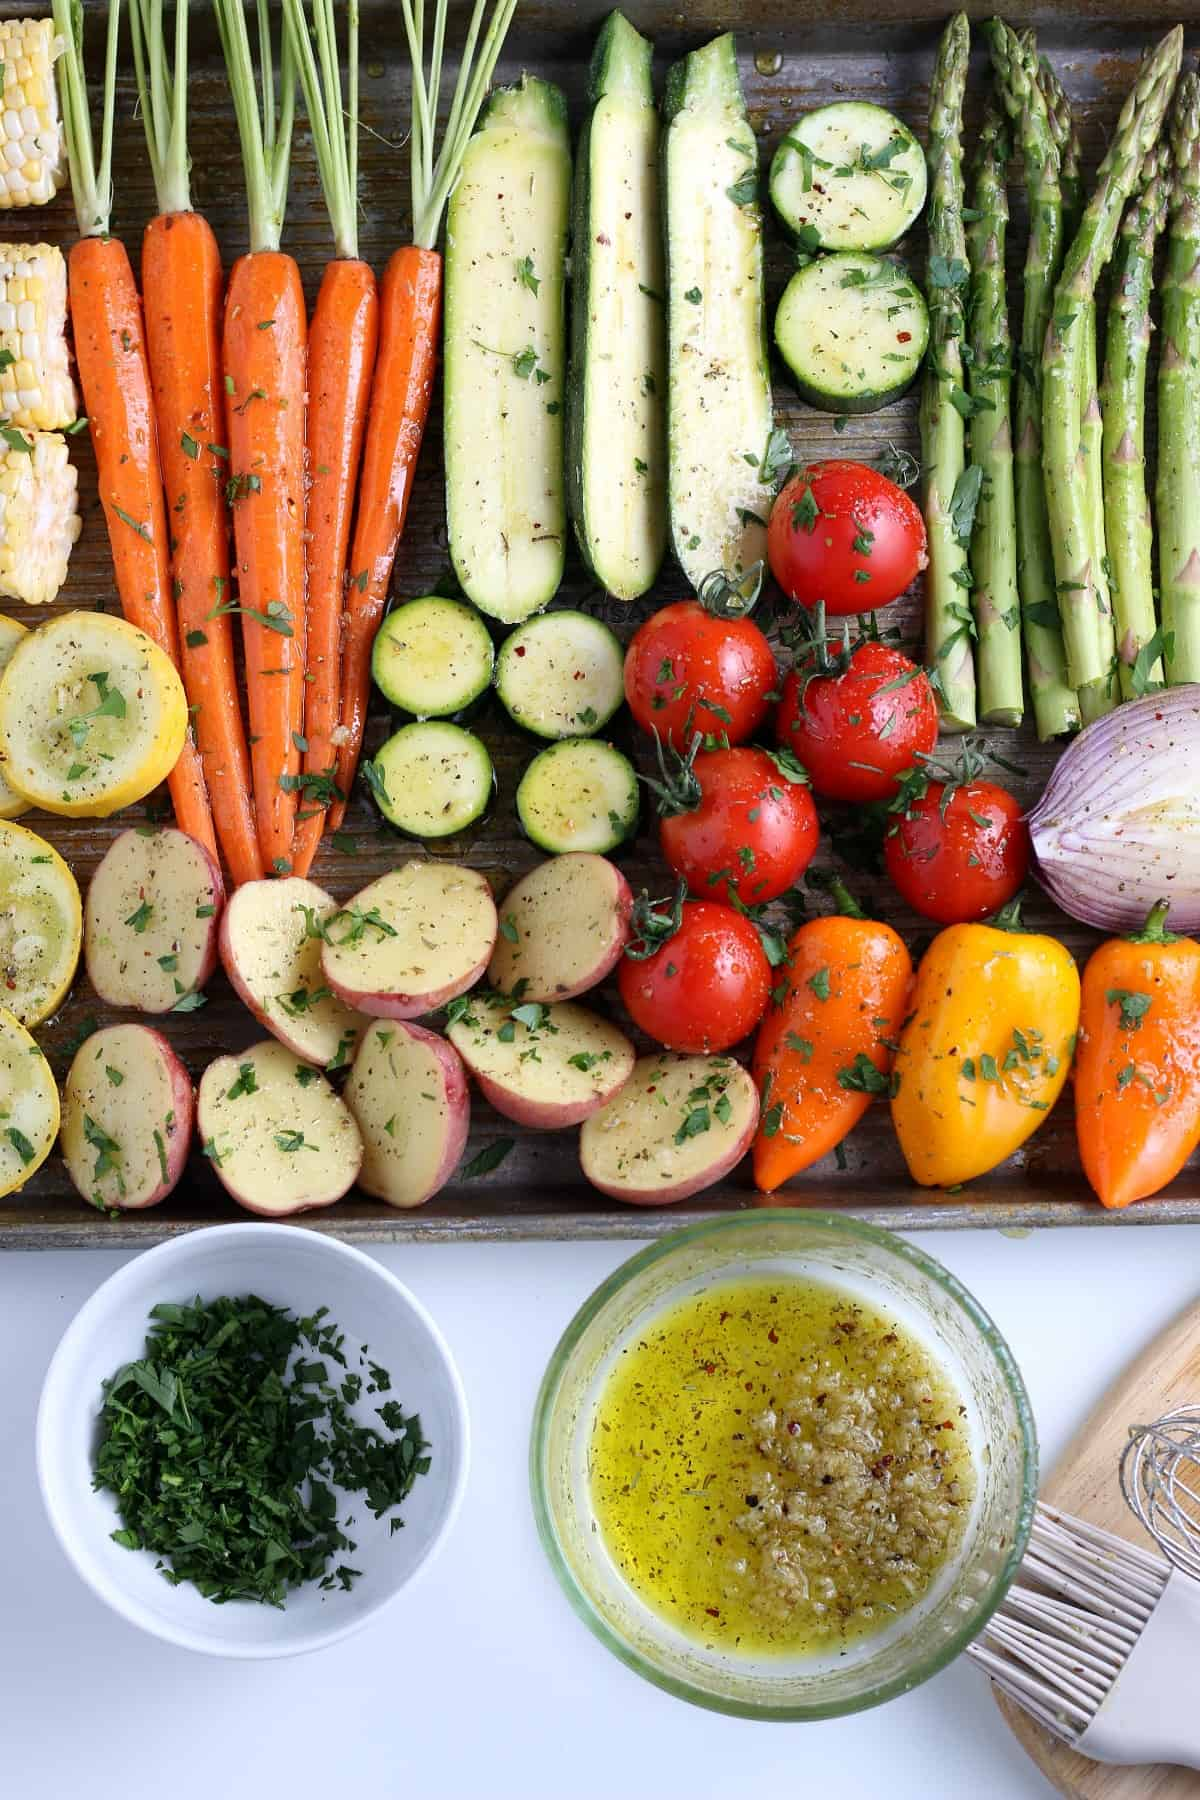 Overhead view of all of the fresh prepared vegetables laid out on a sheet pay and brushed with the grilling marinade.